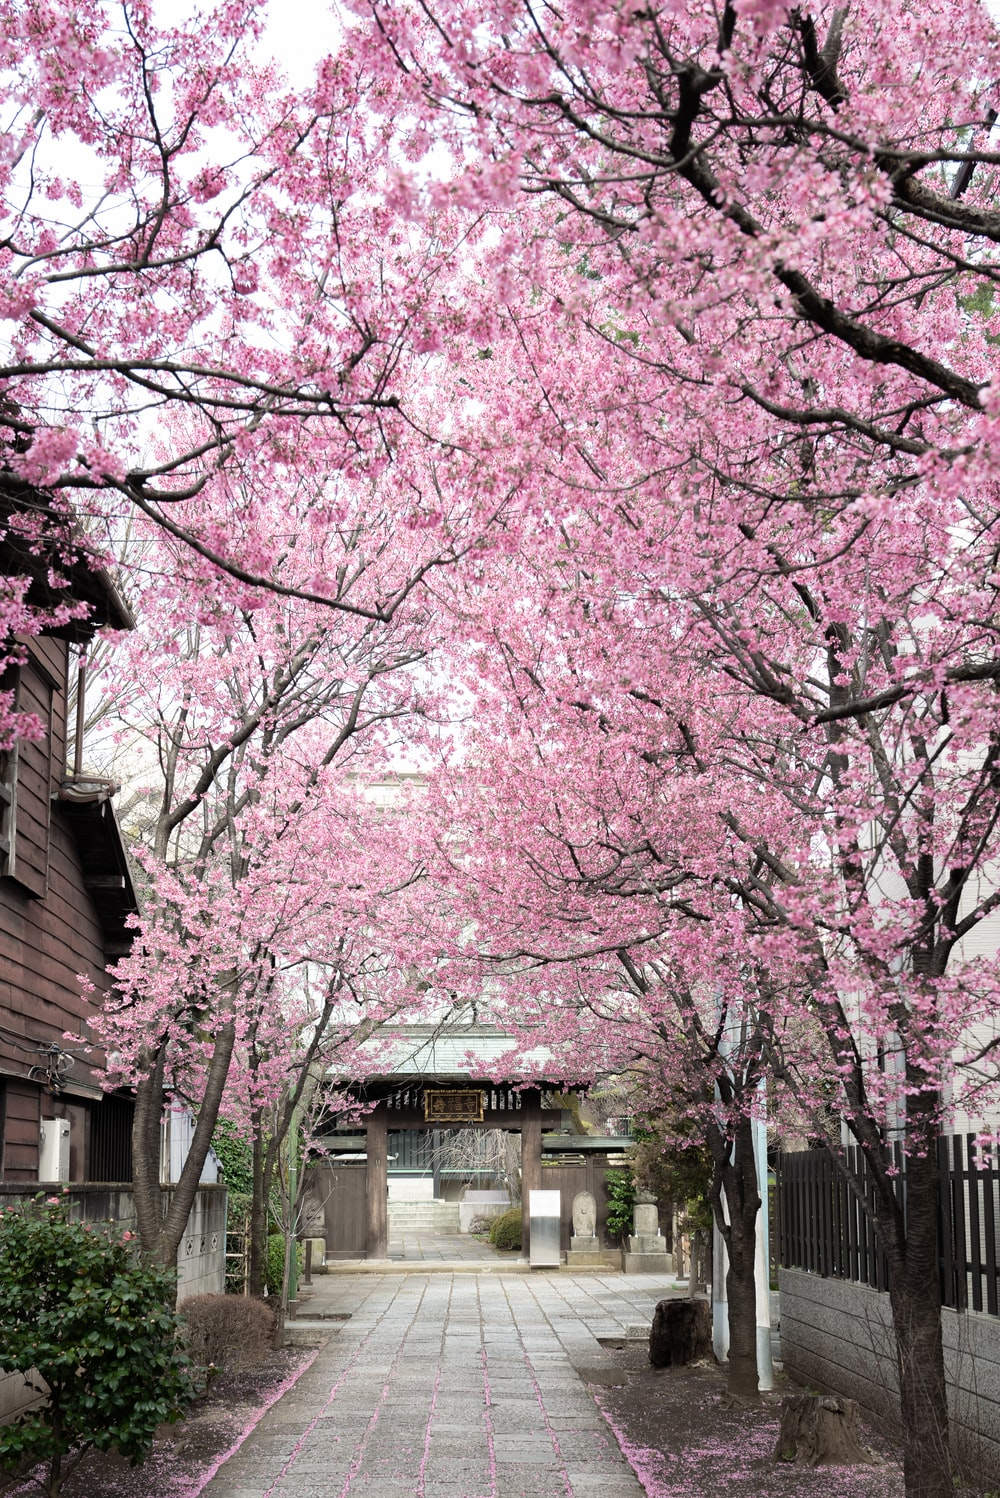 pink cherry blossom tree near white building during daytime